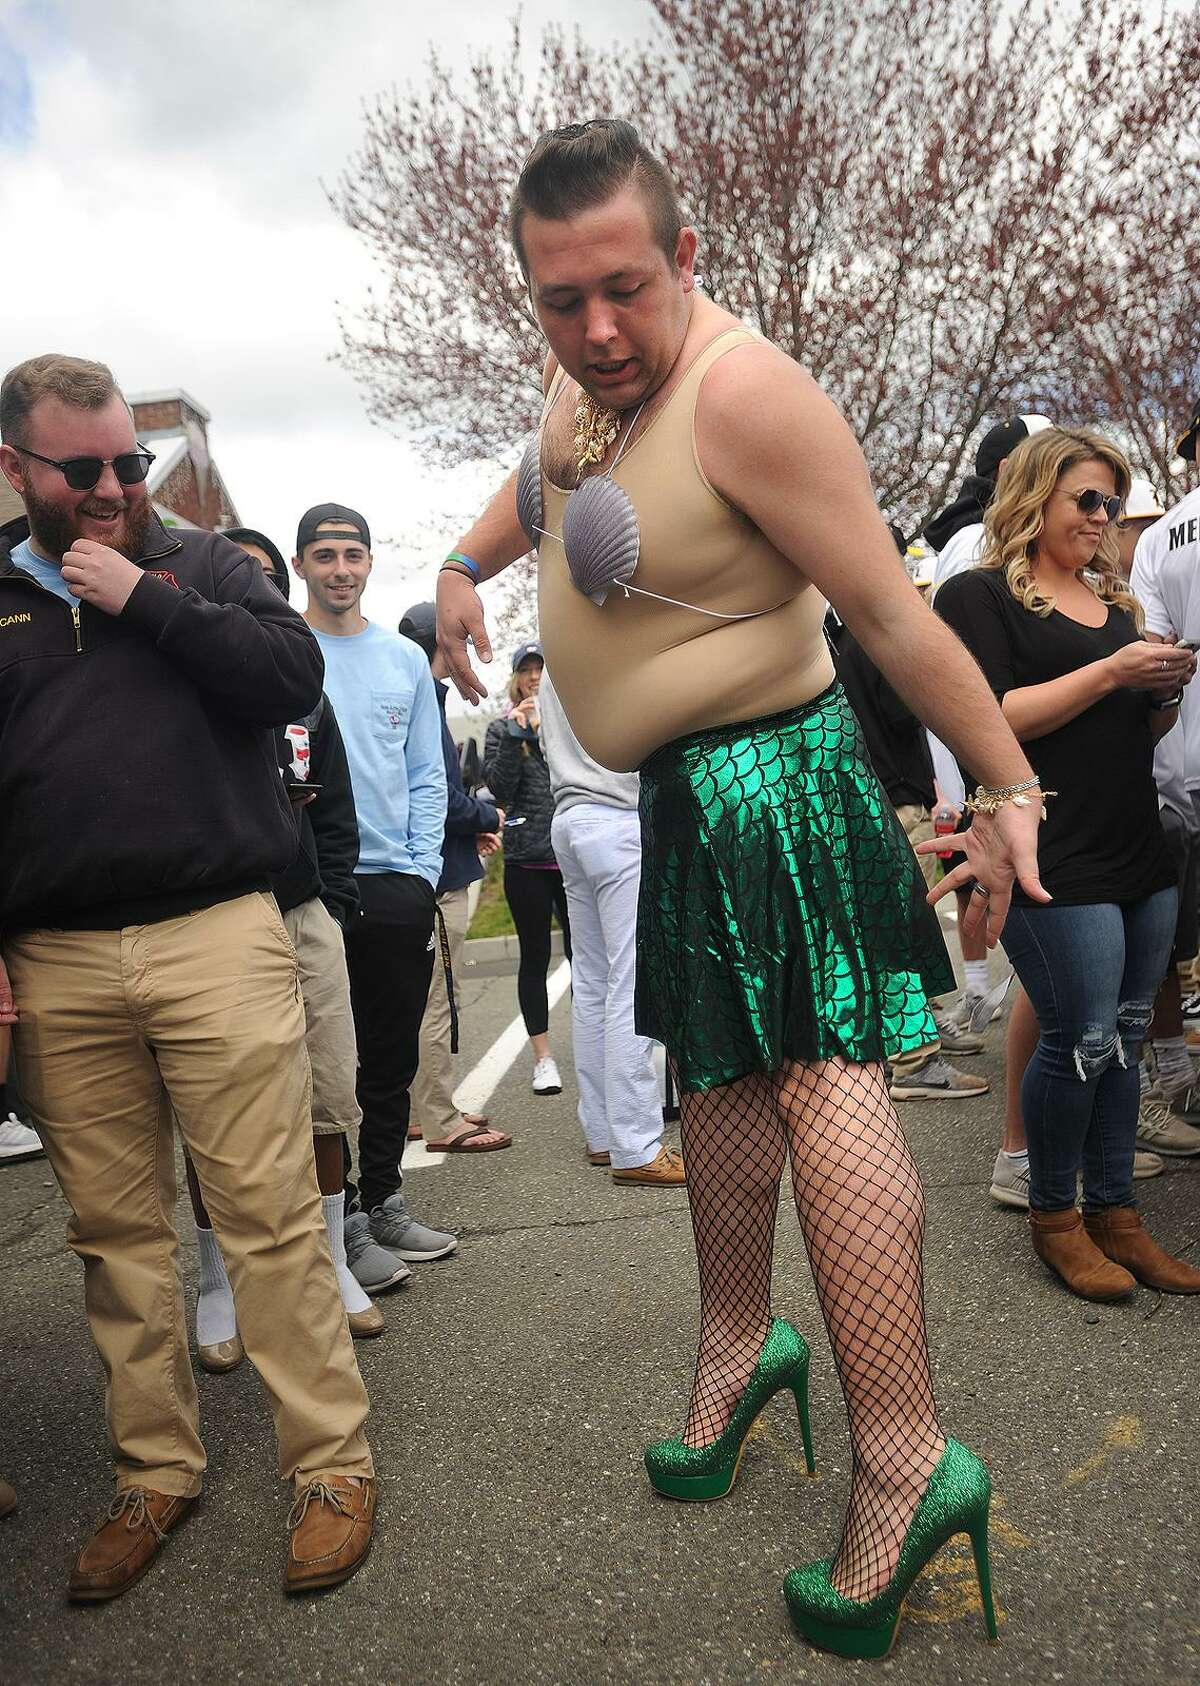 """University of New Haven student Jason Gundry dressed as a mermaid for the annual Walk a Mile in Her Shoes fundraiser in Milford, Conn. on Sunday, April 29, 2018. The walk benefits The Rape Crisis Center of Milford. Gundry won the """"Best in Shoe"""" award the previous year when he dressed as a Playboy bunny."""